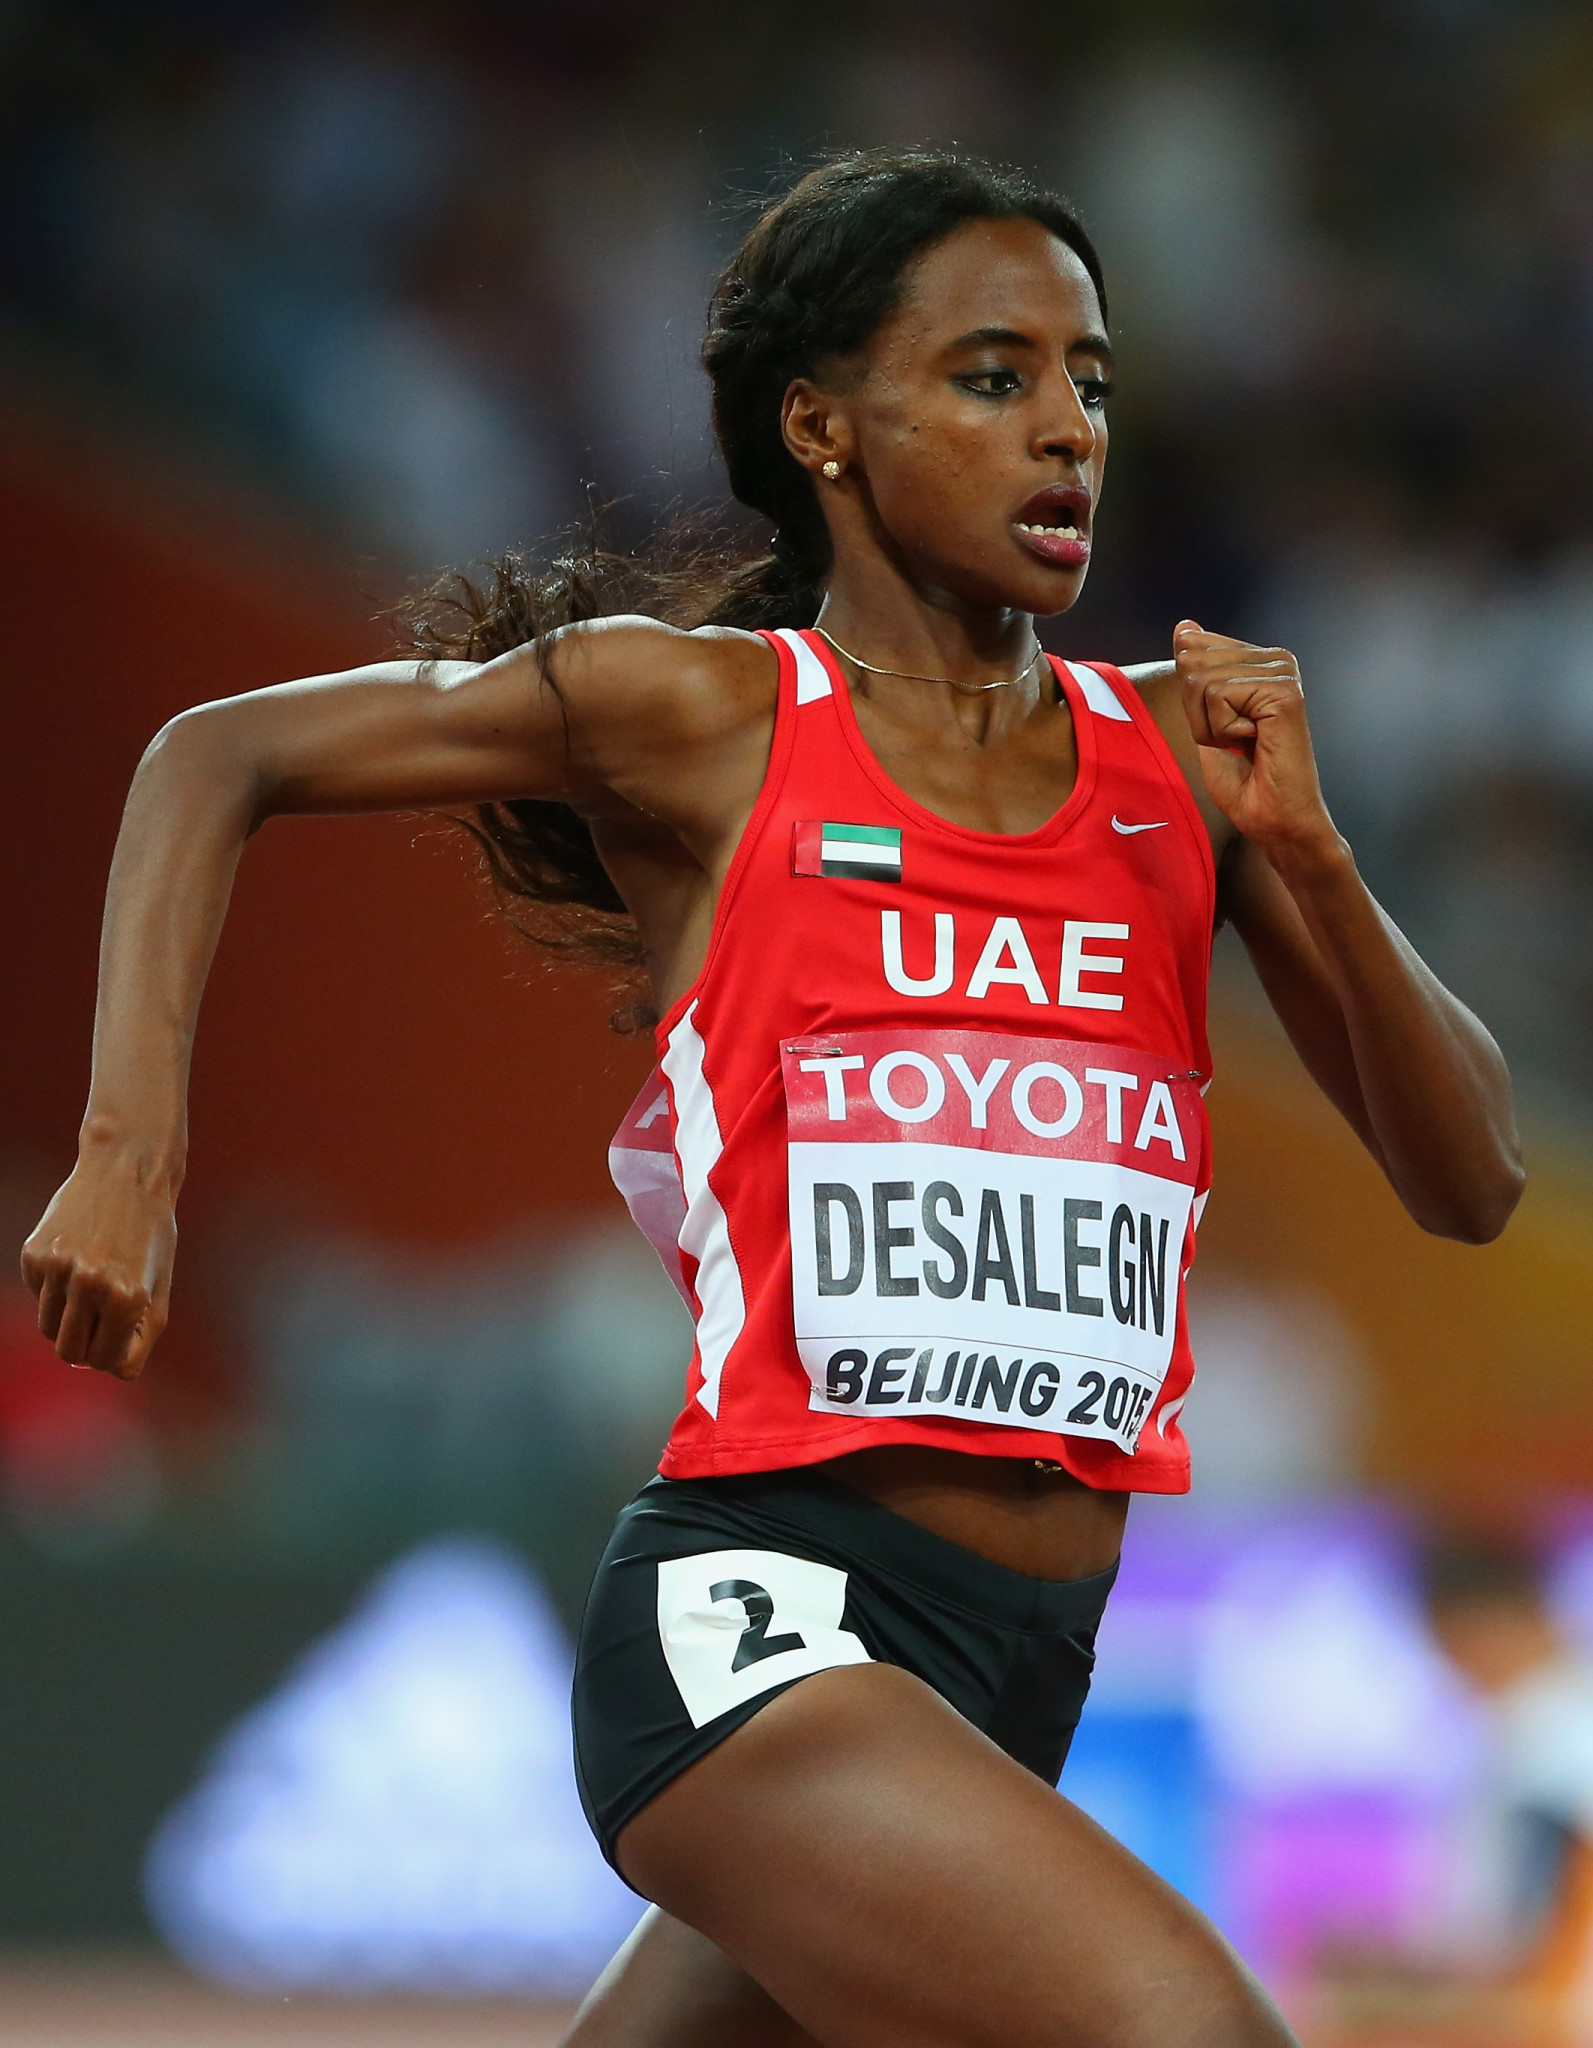 The Athletics Integrity Unit has today welcomed the decision of the Court of Arbitration for Sport to impose a two-year ban on Emirati middle-distance runner Betlhem Desalegn ©Getty Images